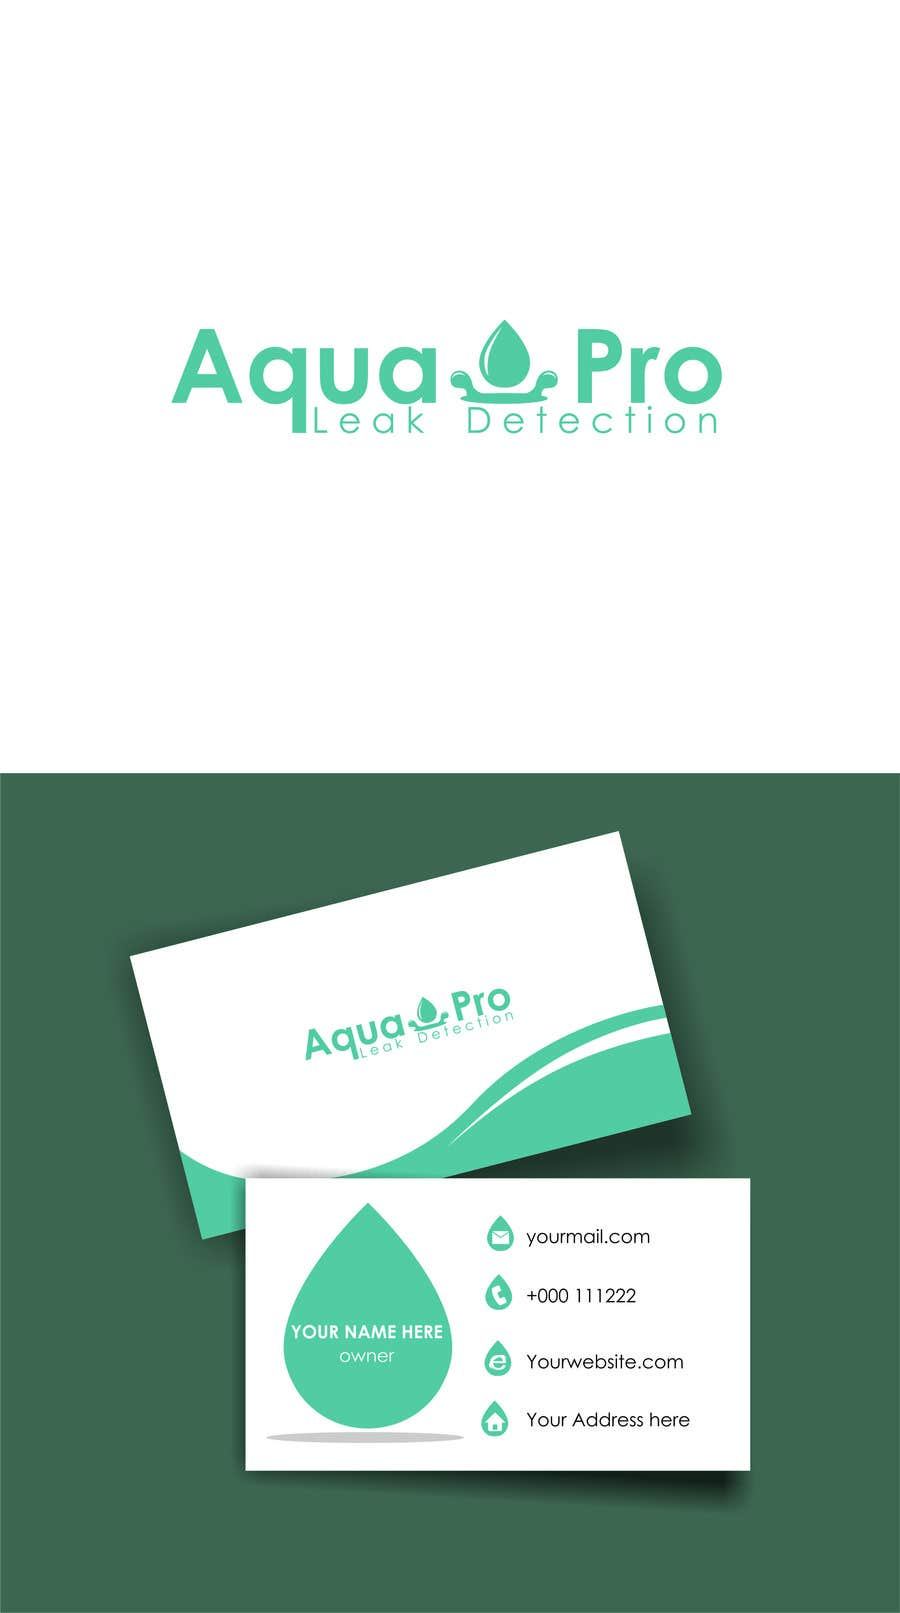 Contest Entry #31 for Design a Logo and Business Card for a Leak Detection Company for Water Leaks (Similar to Plumber) Up to 2 Winners